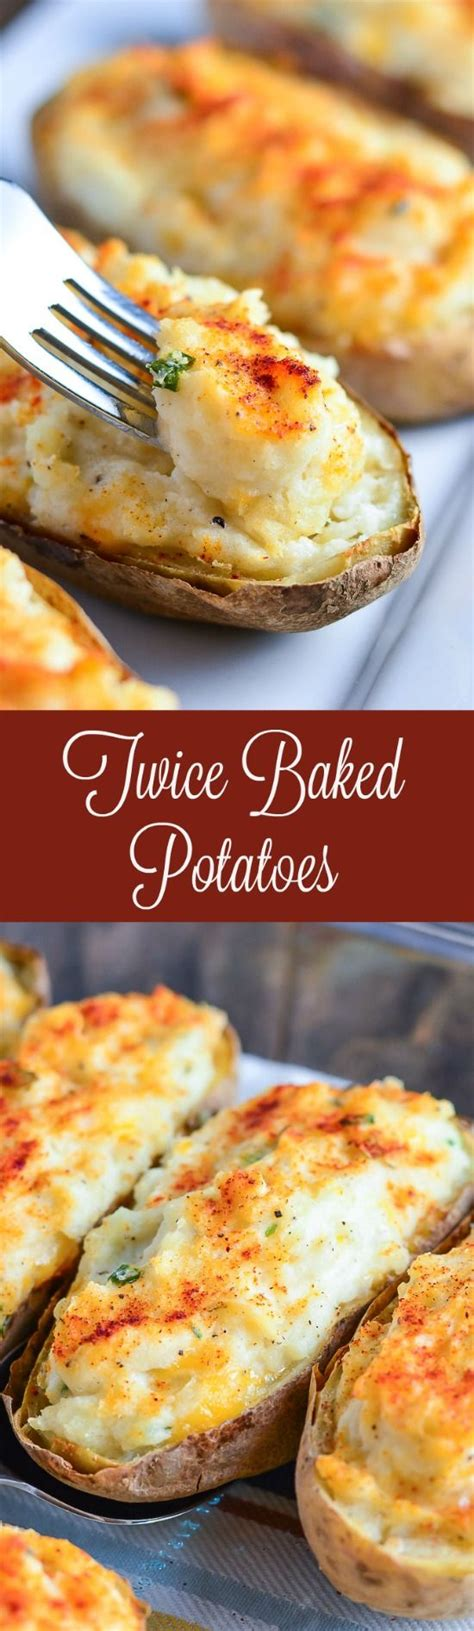 baked potato bar side dishes 25 best ideas about baked potatoes on pinterest baked potato toppings recipe for baked